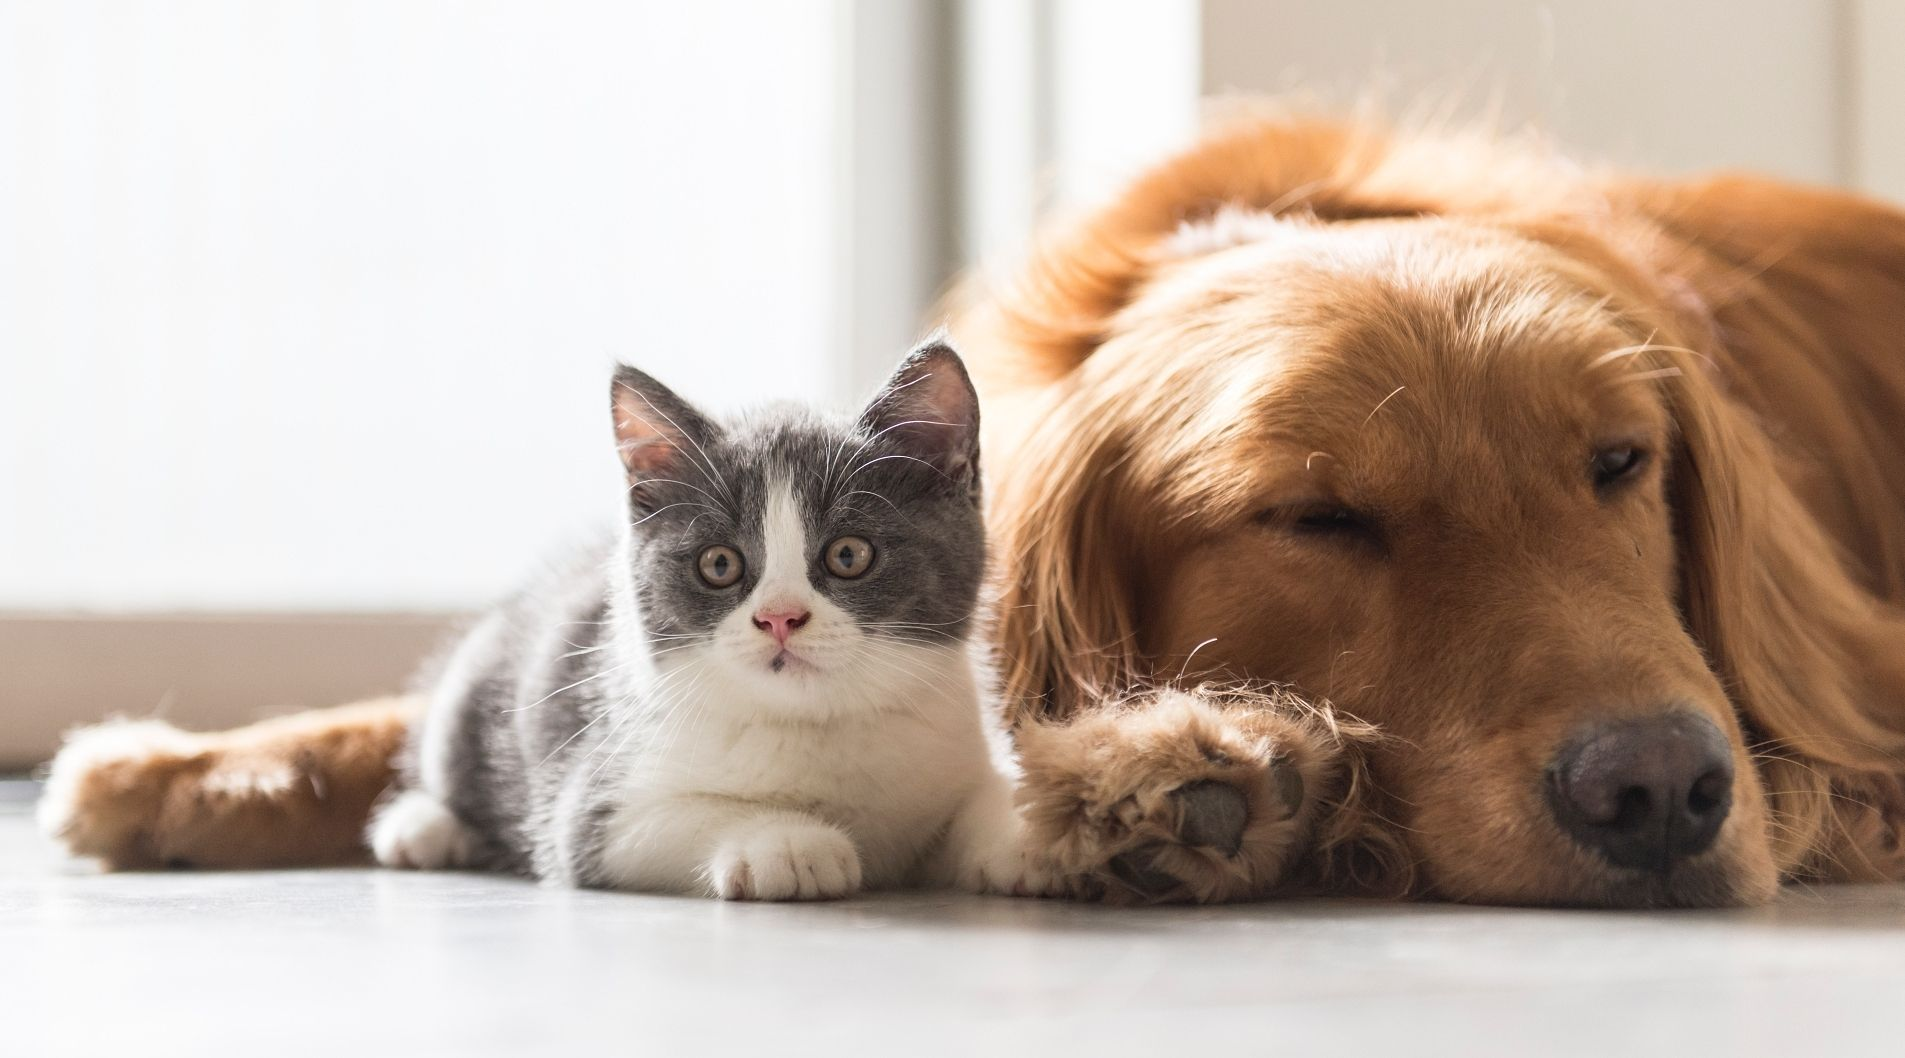 beautiful-kitten-and-brown-dog-in-house-dog-sitting